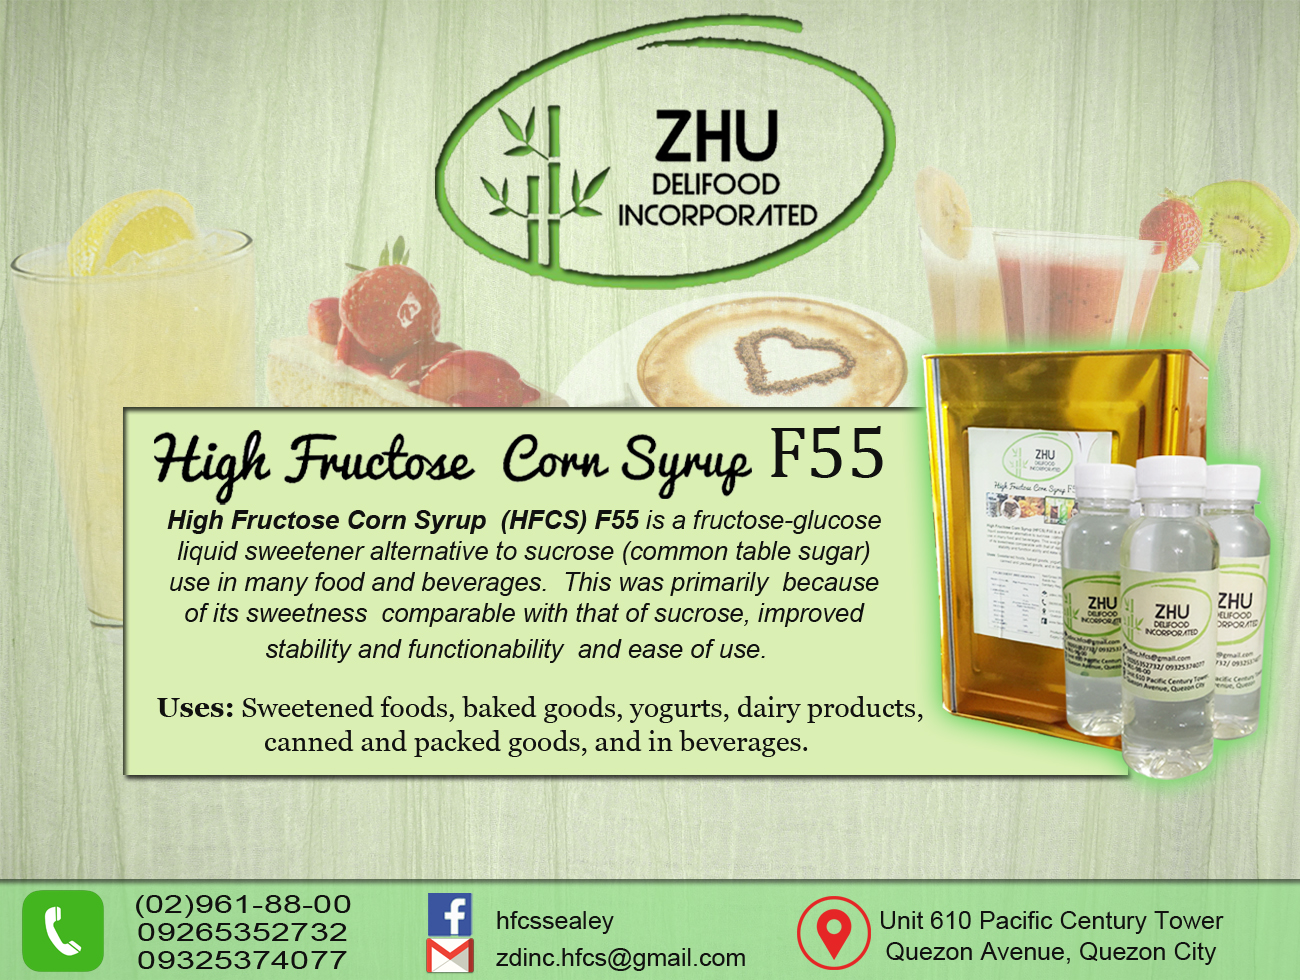 High Fructose Corn Syrup F55